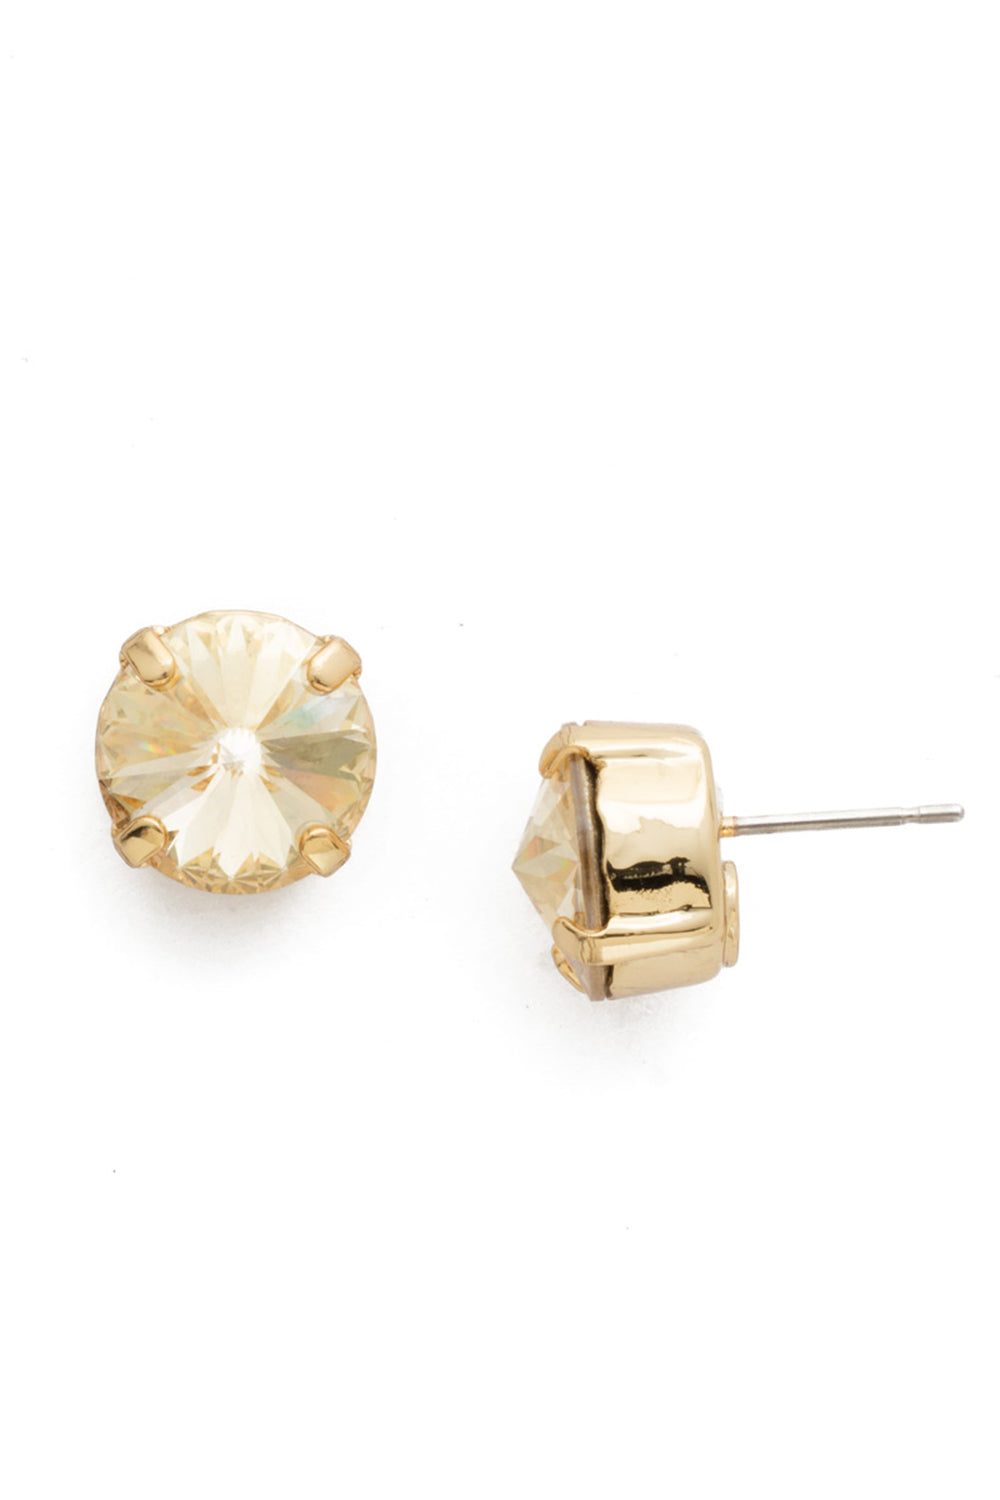 Round Crystal Stud Earring - Crystal Champagne